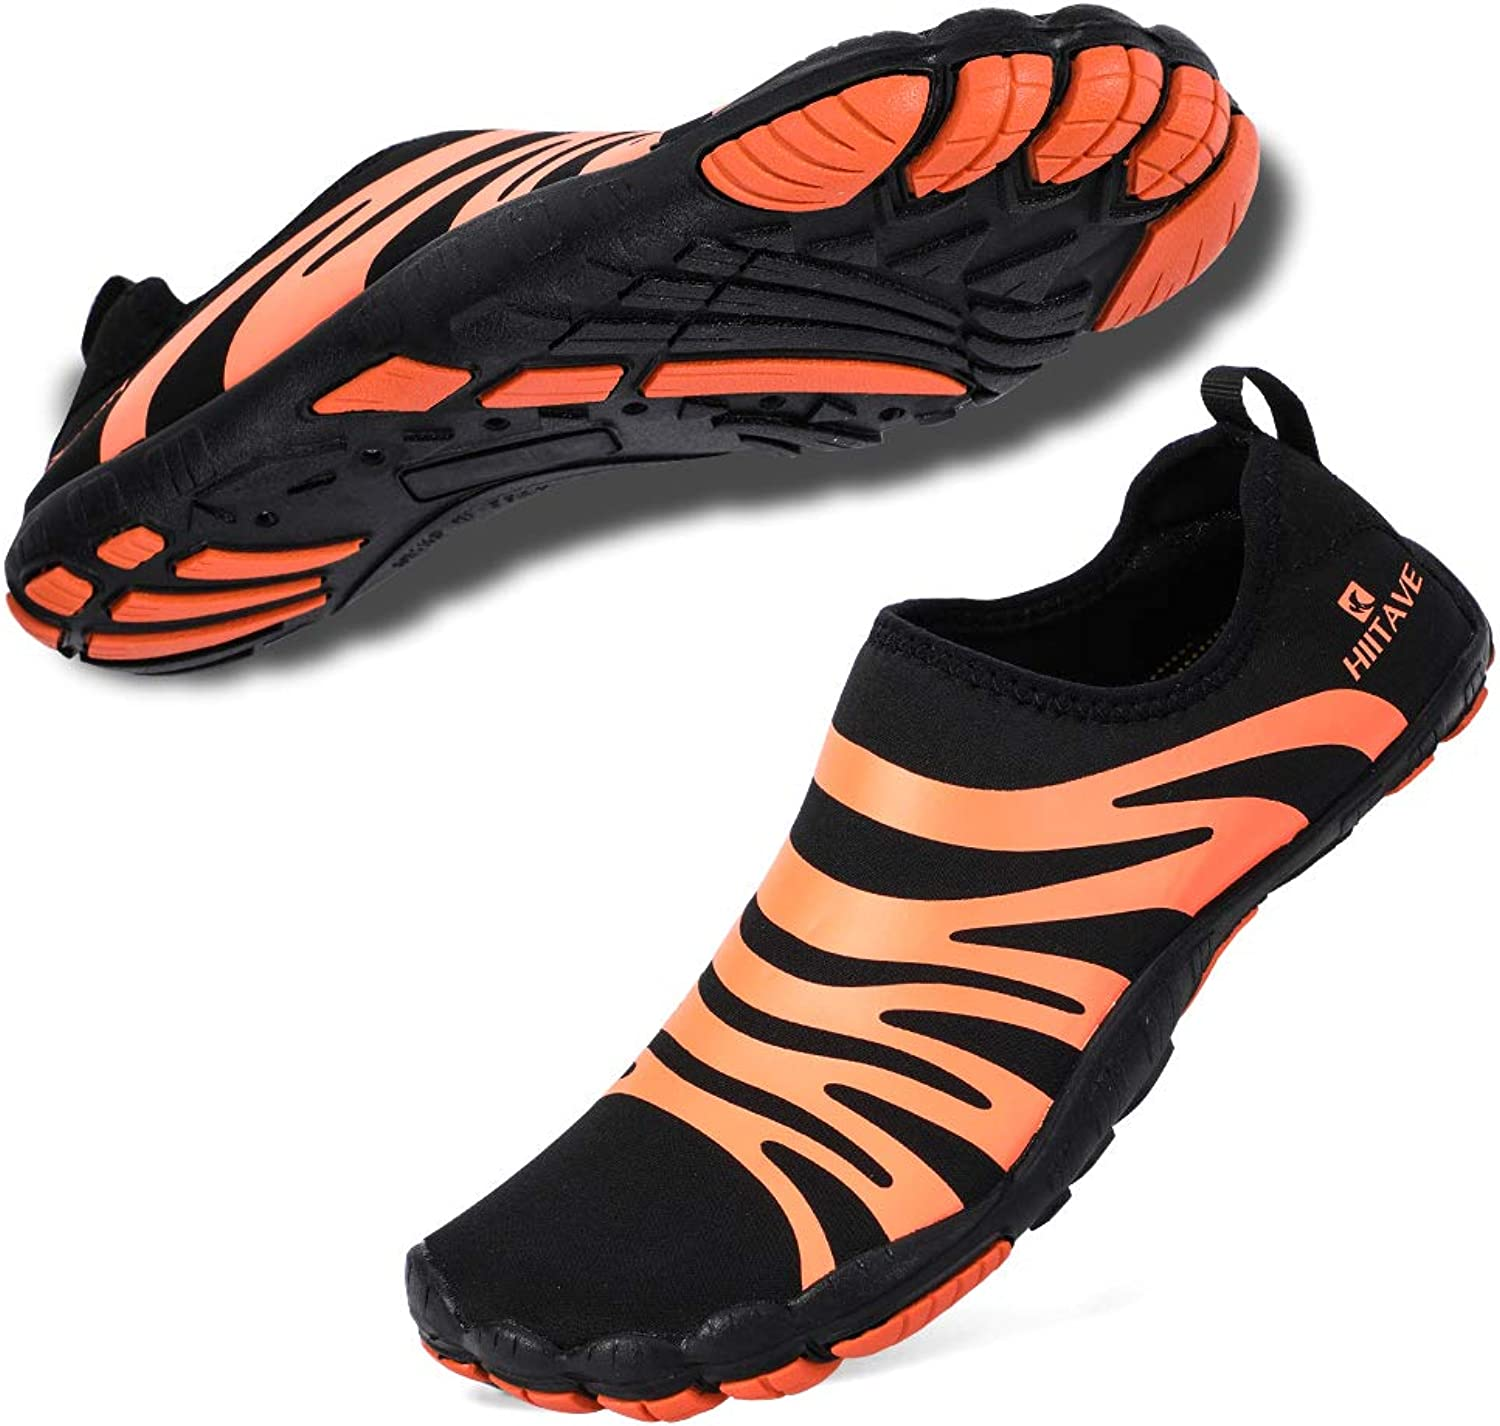 Hiitave Women Water shoes Barefoot Beach Aqua Socks Quick Dry for Outdoor Sport Hiking Swiming Surfing Black orange 9.5 10 M US Women